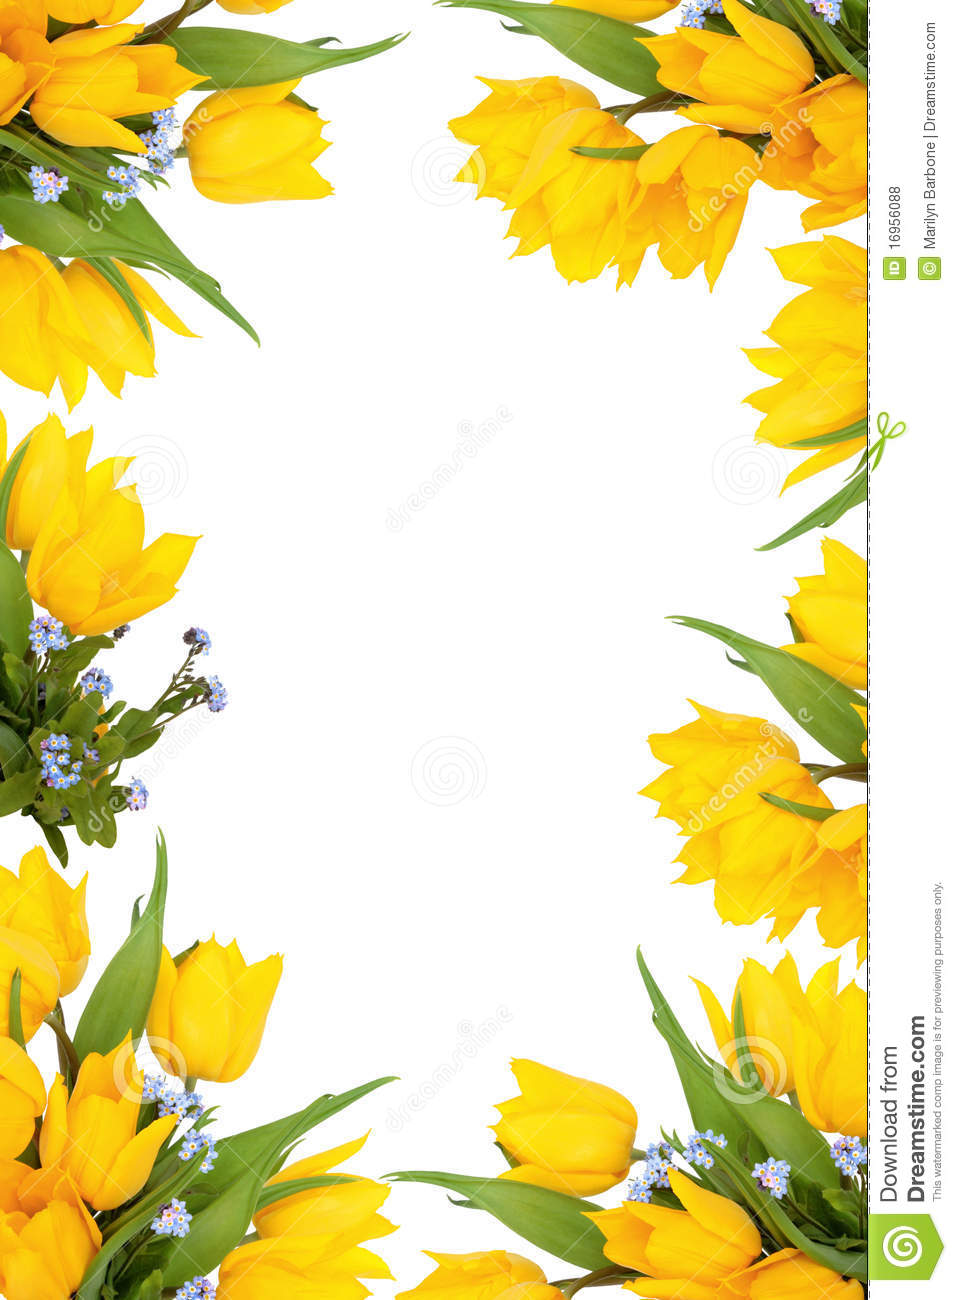 Spring Flower Frame Royalty Free Stock Photos - Image: 16956088